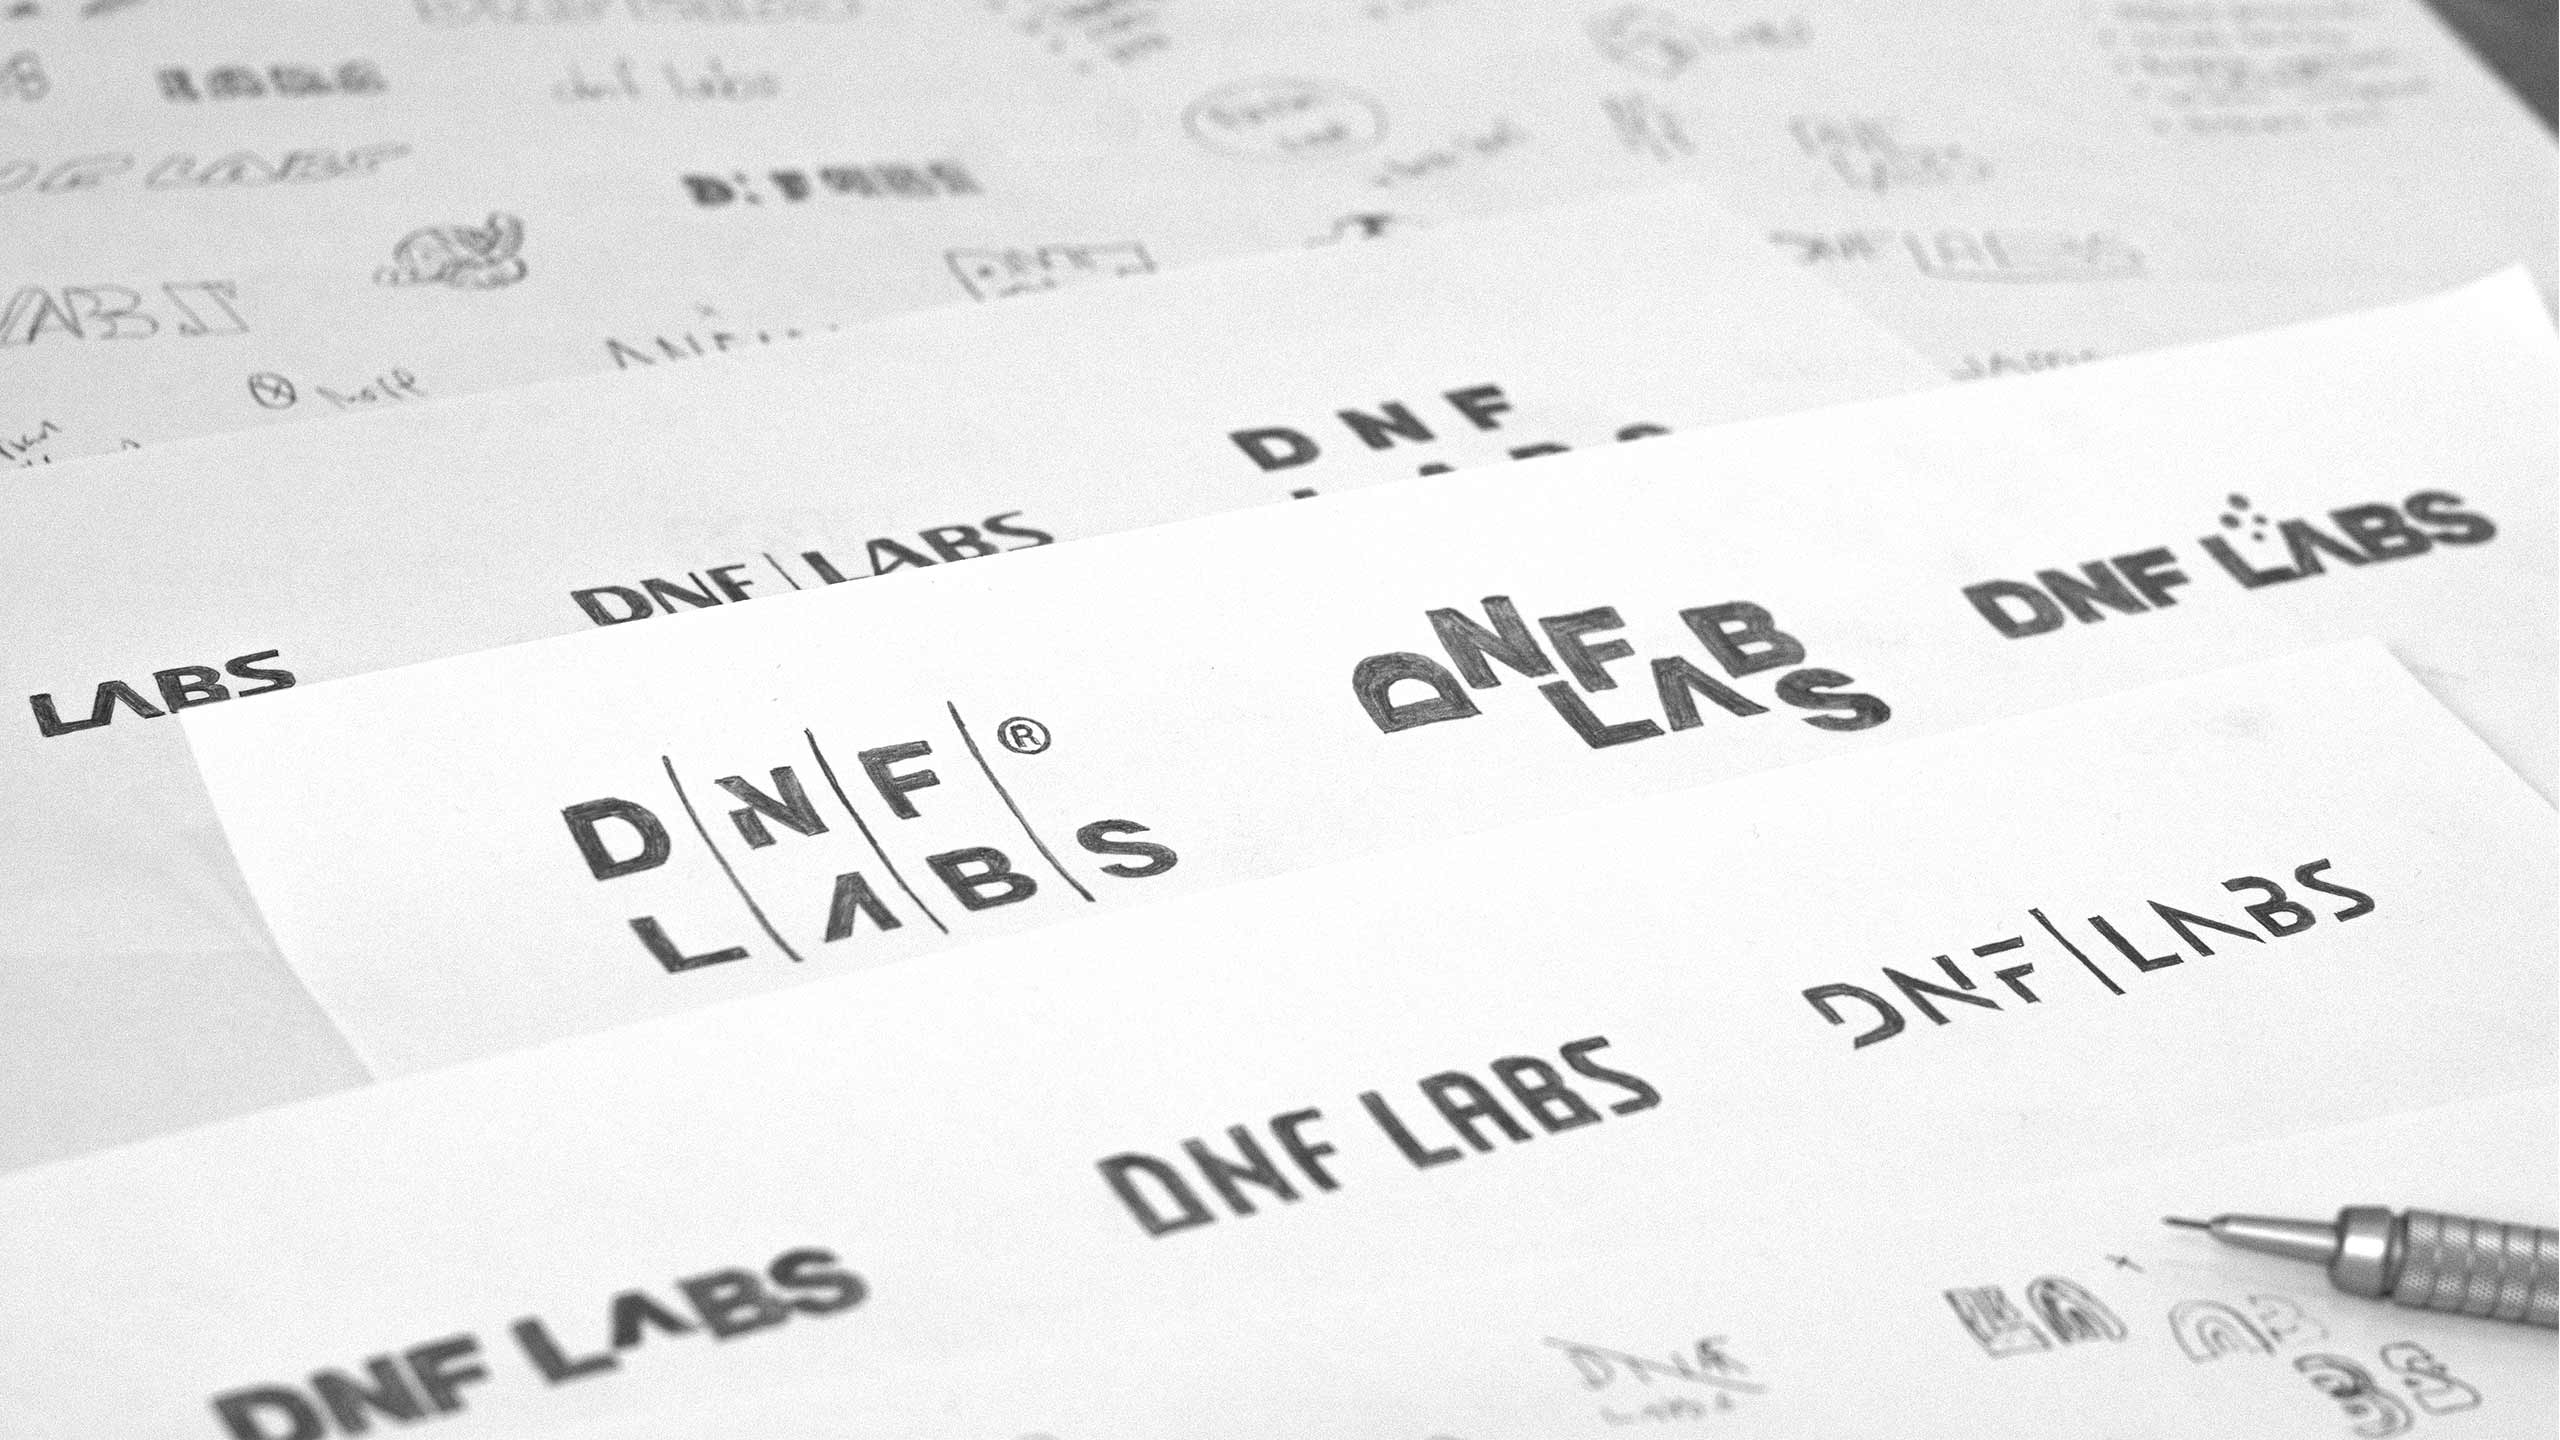 Hand-drawn sketches for DNF LABS